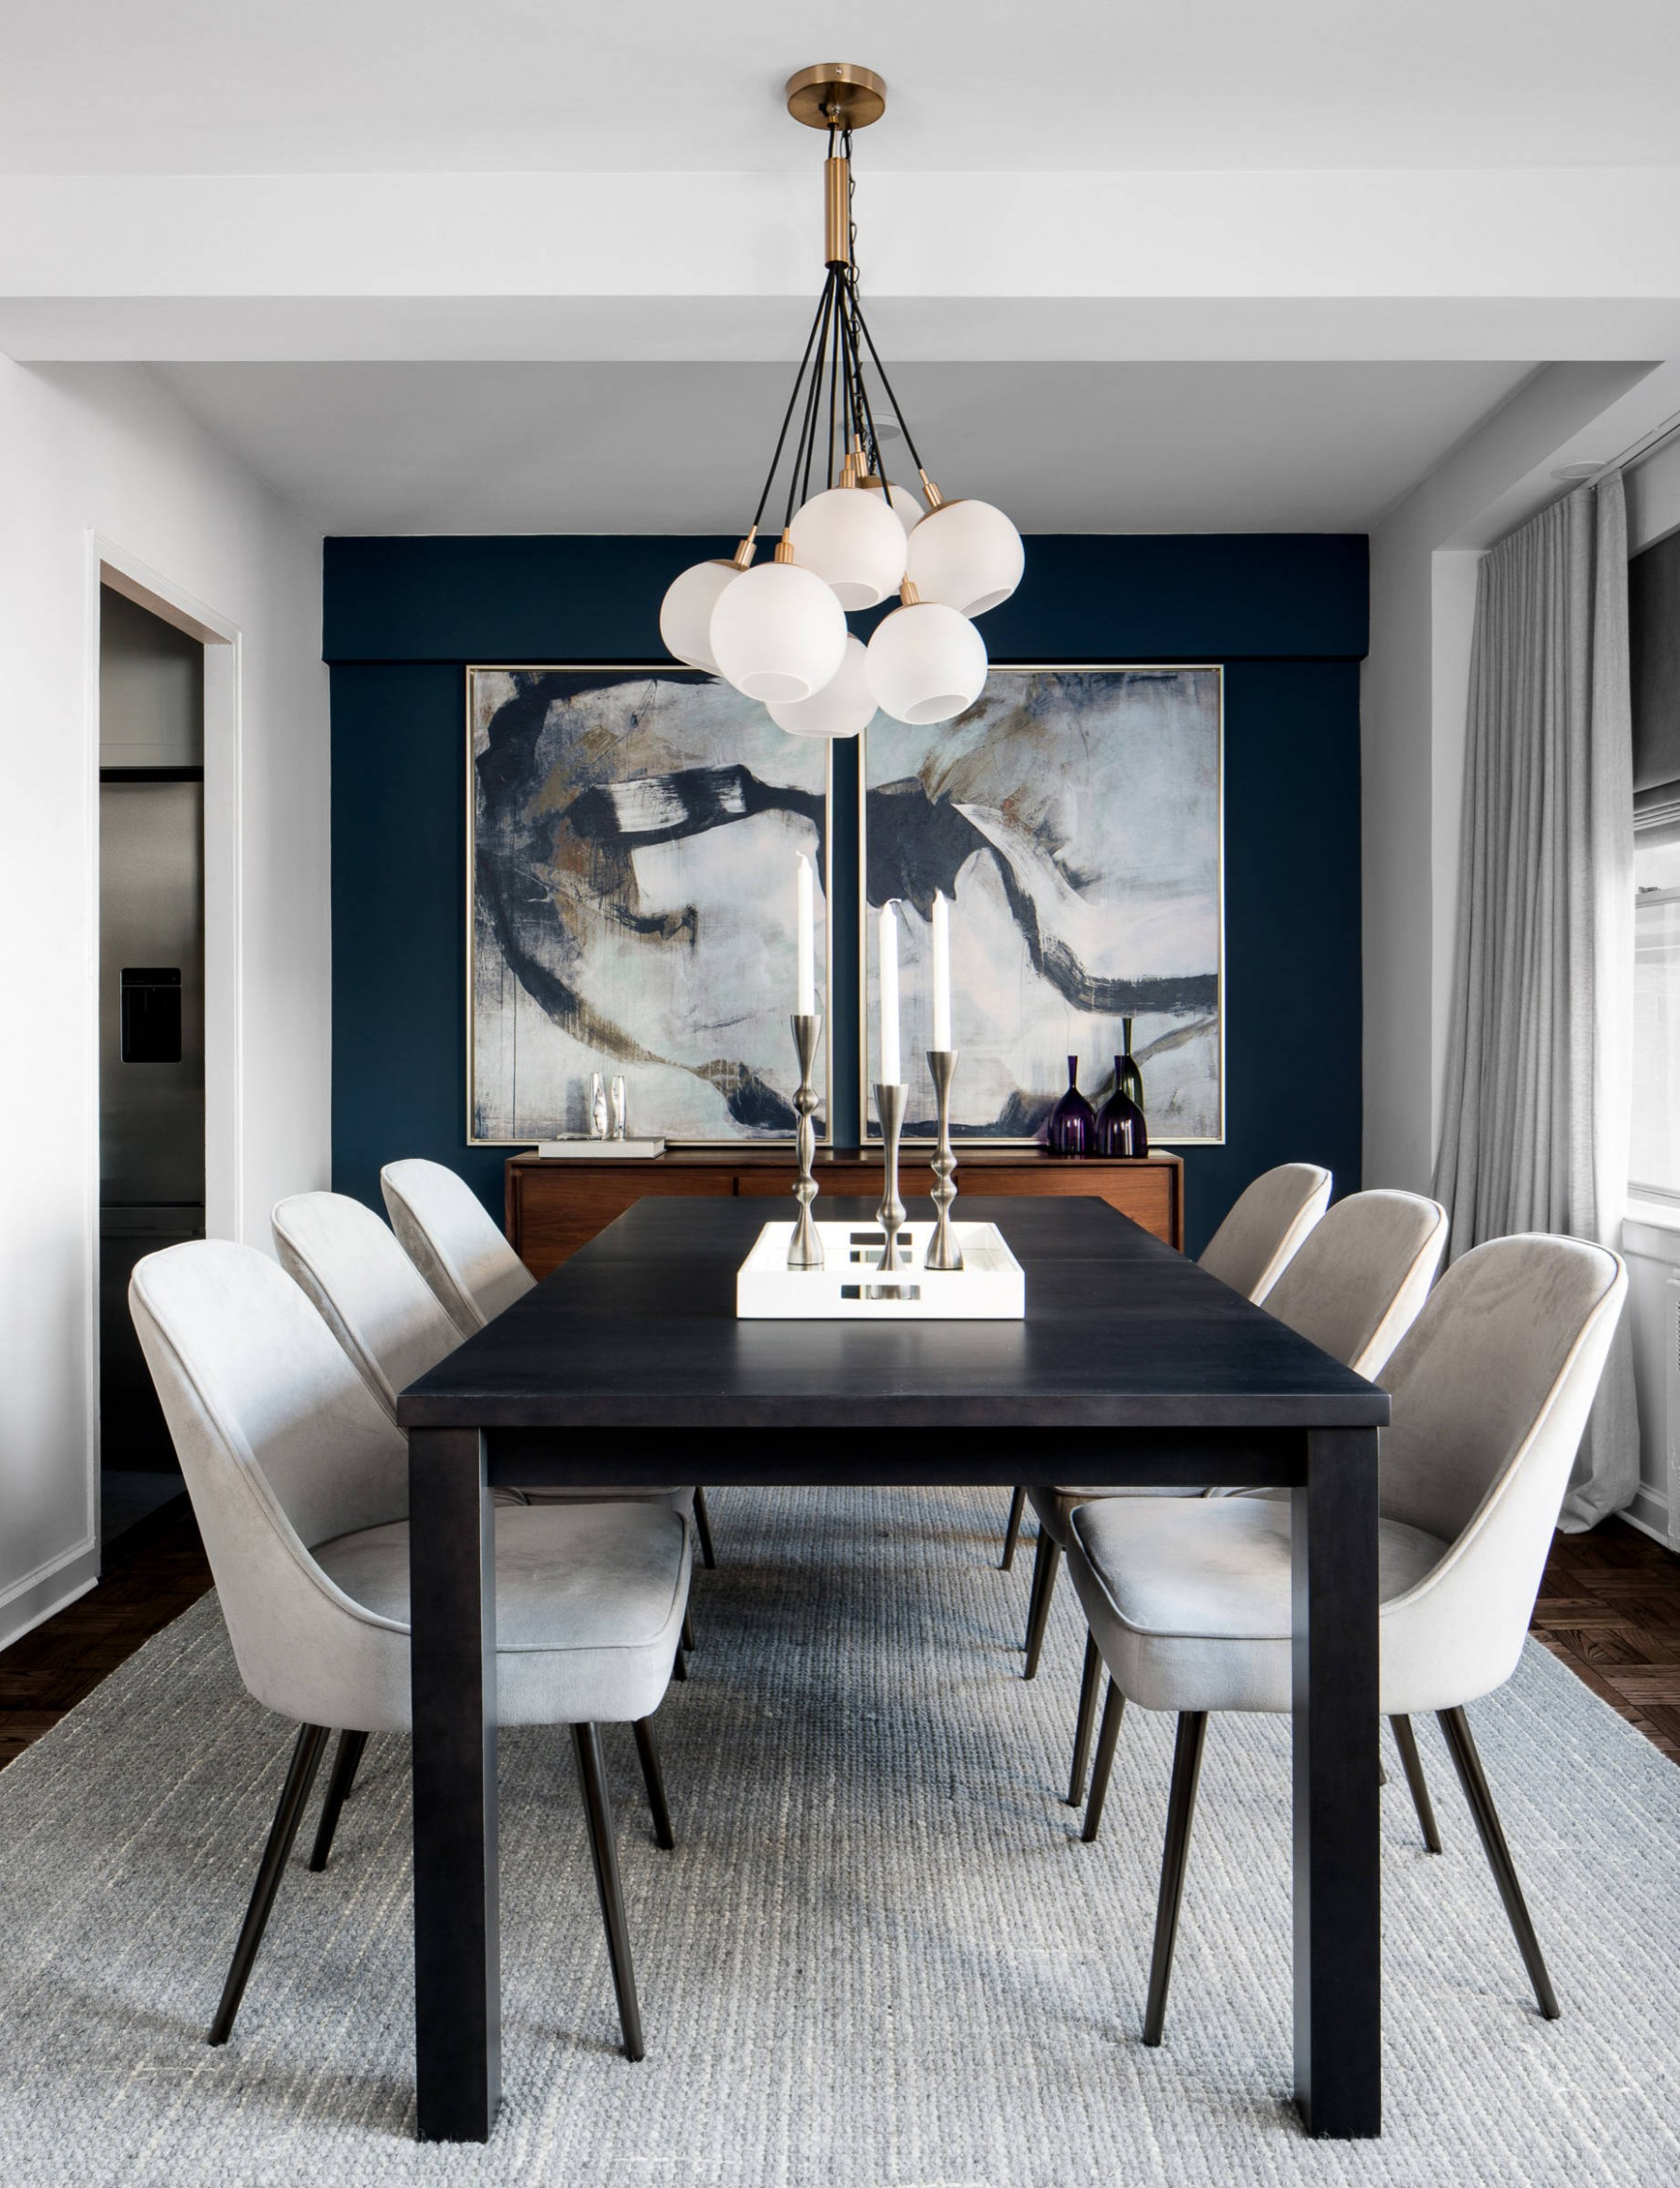 8 Beautiful White Dining Room Pictures & Ideas - October, 8  - Dining Room Ideas Design